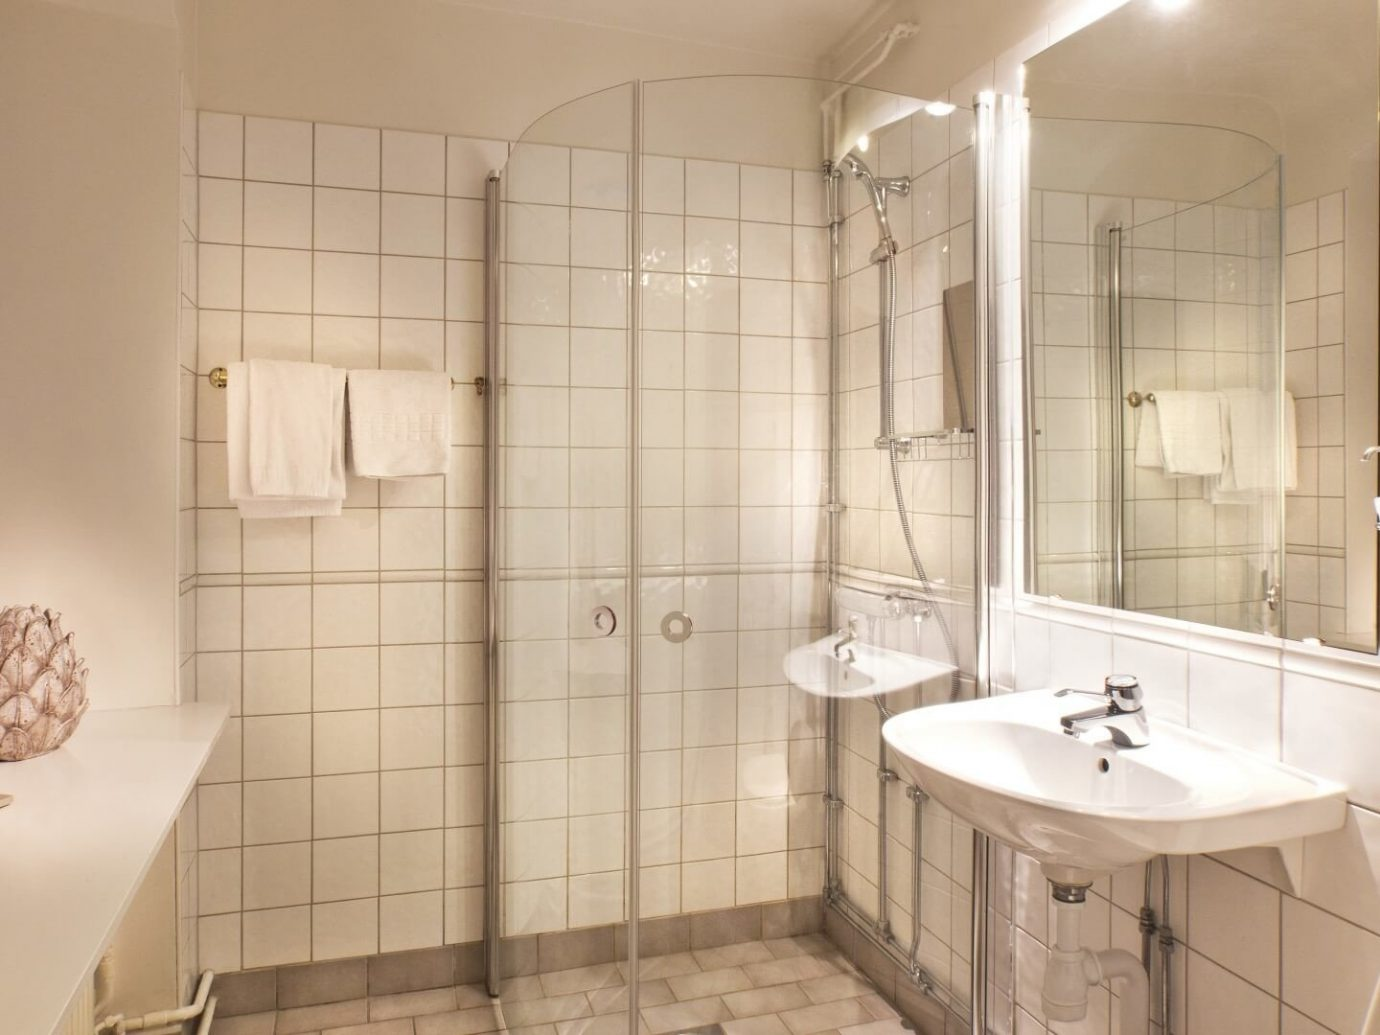 Denmark Finland Hotels Landmarks Luxury Travel Sweden bathroom indoor wall room property sink mirror interior design toilet home tile product design plumbing fixture floor interior designer tan tiled